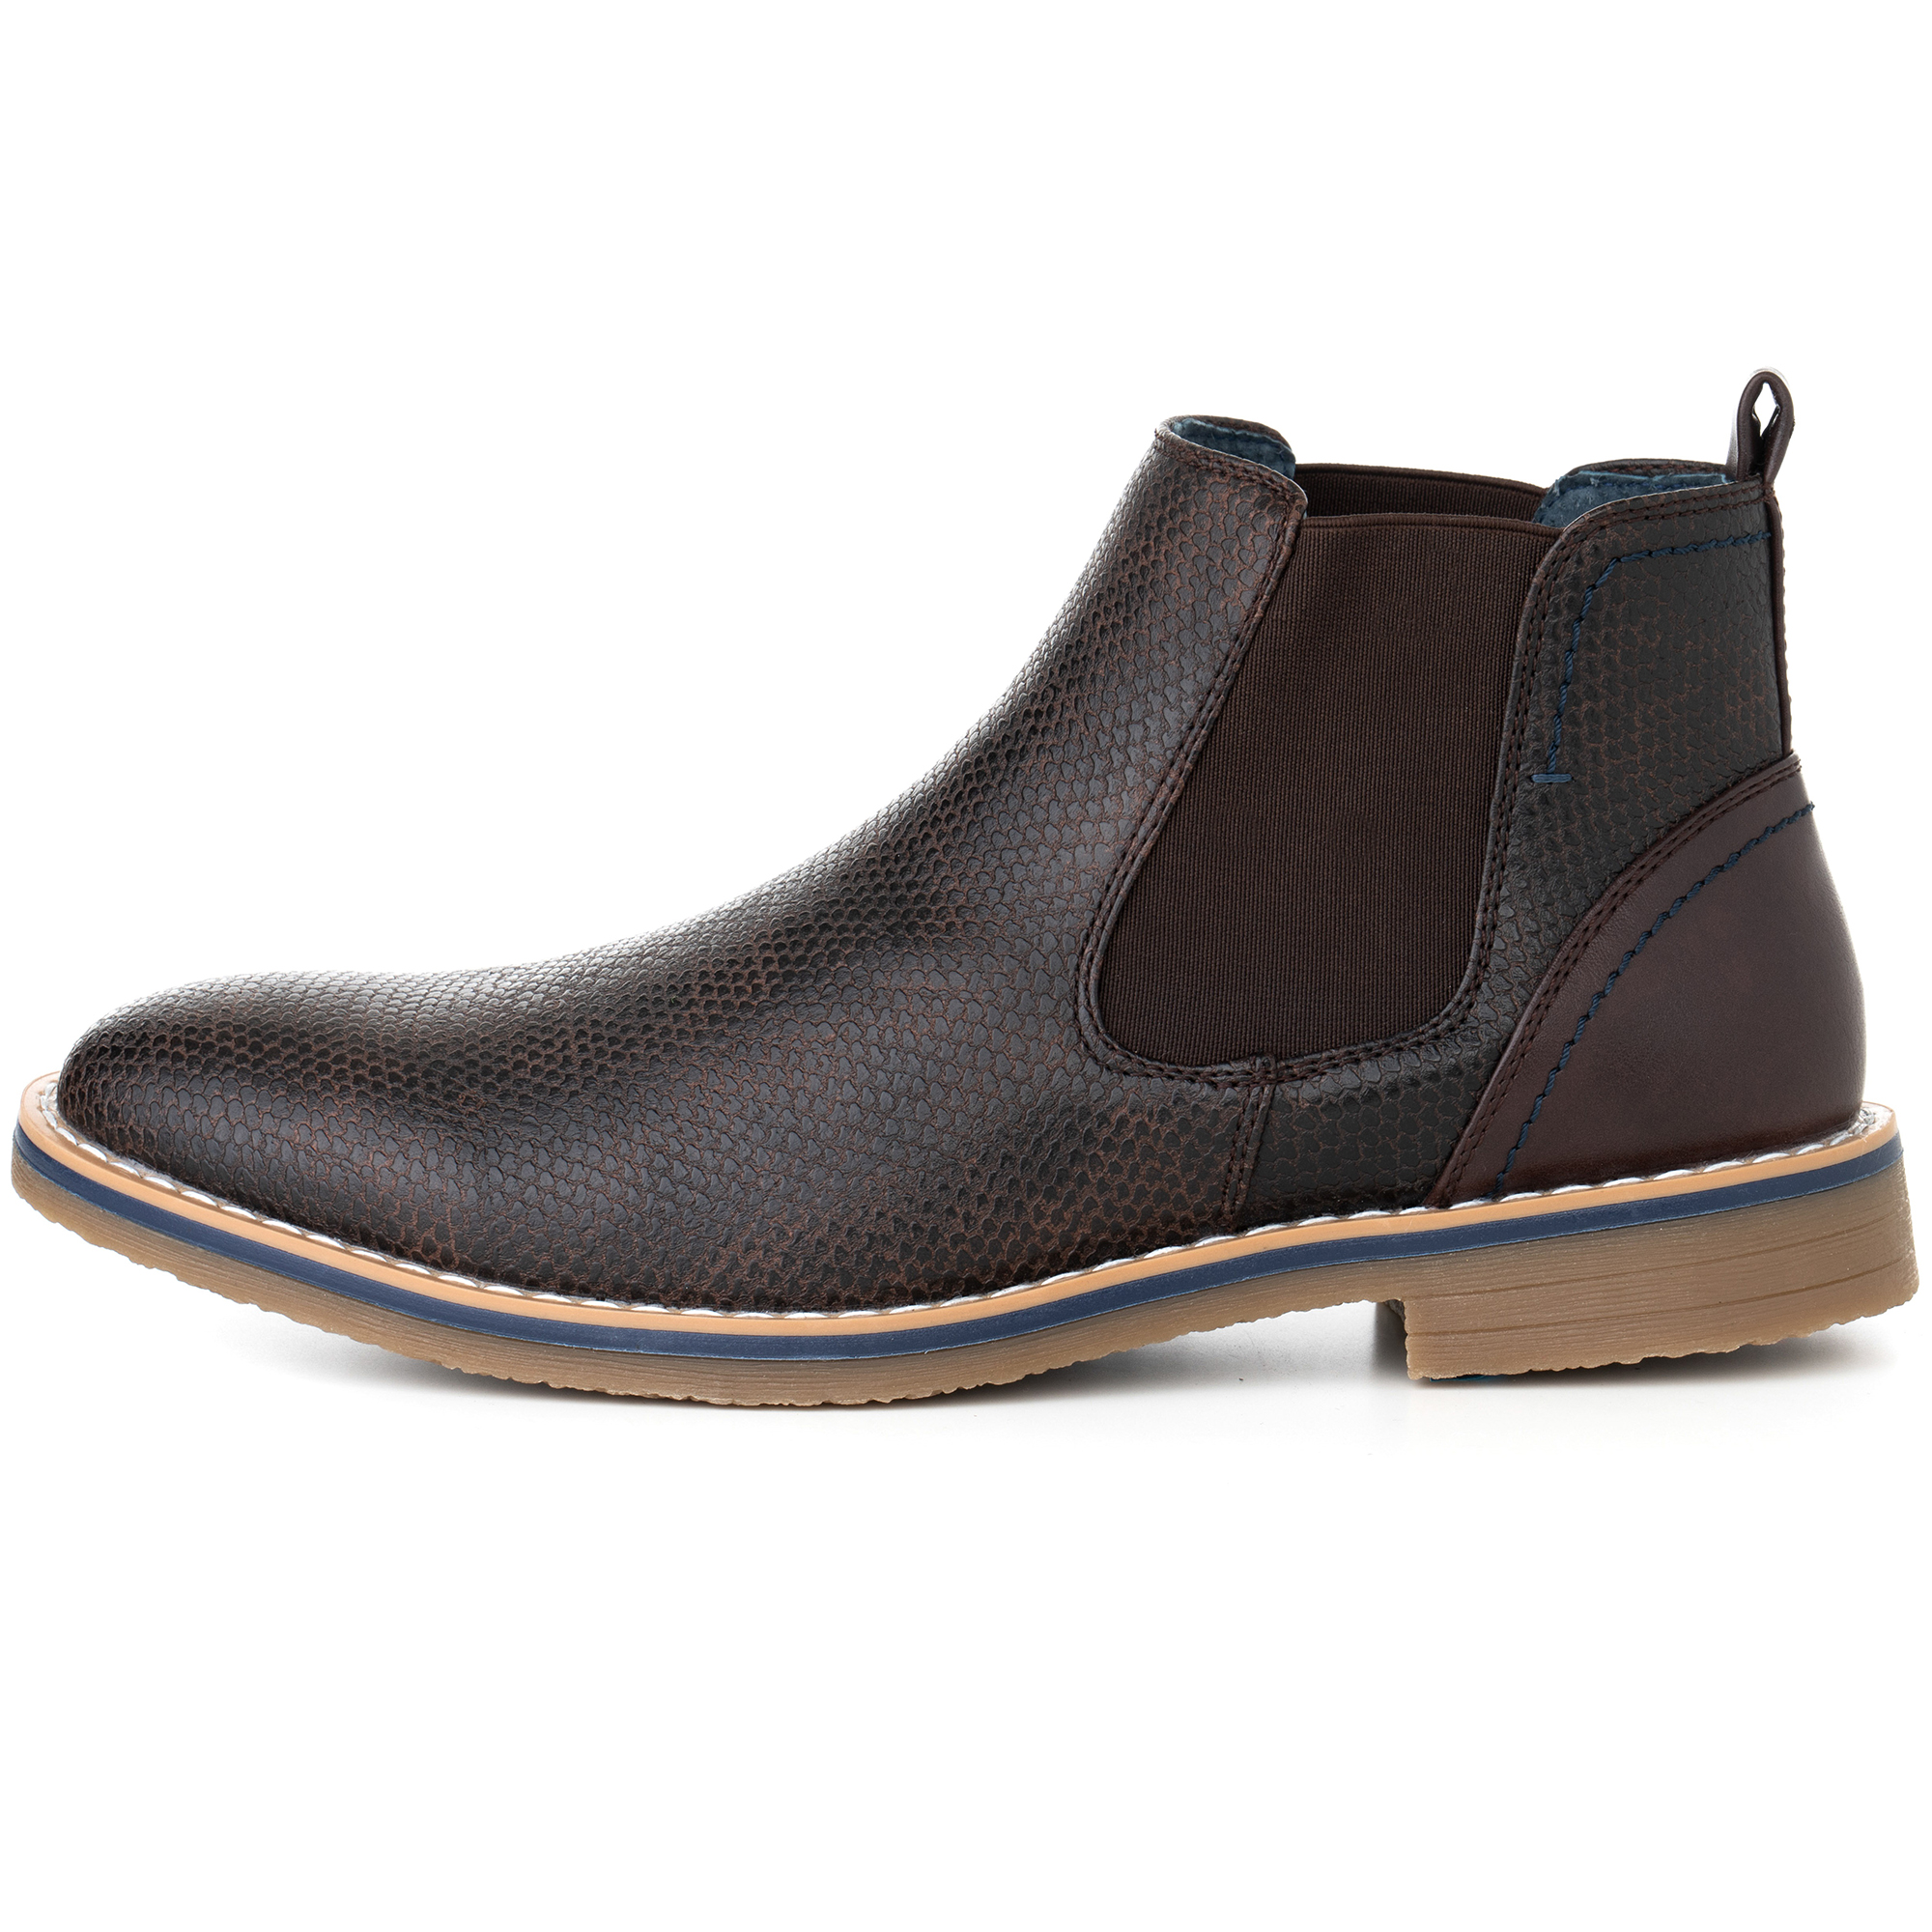 Alpine-Swiss-Mens-Nash-Chelsea-Boots-Snakeskin-Ankle-Boot-Genuine-Leather-Lined miniature 19